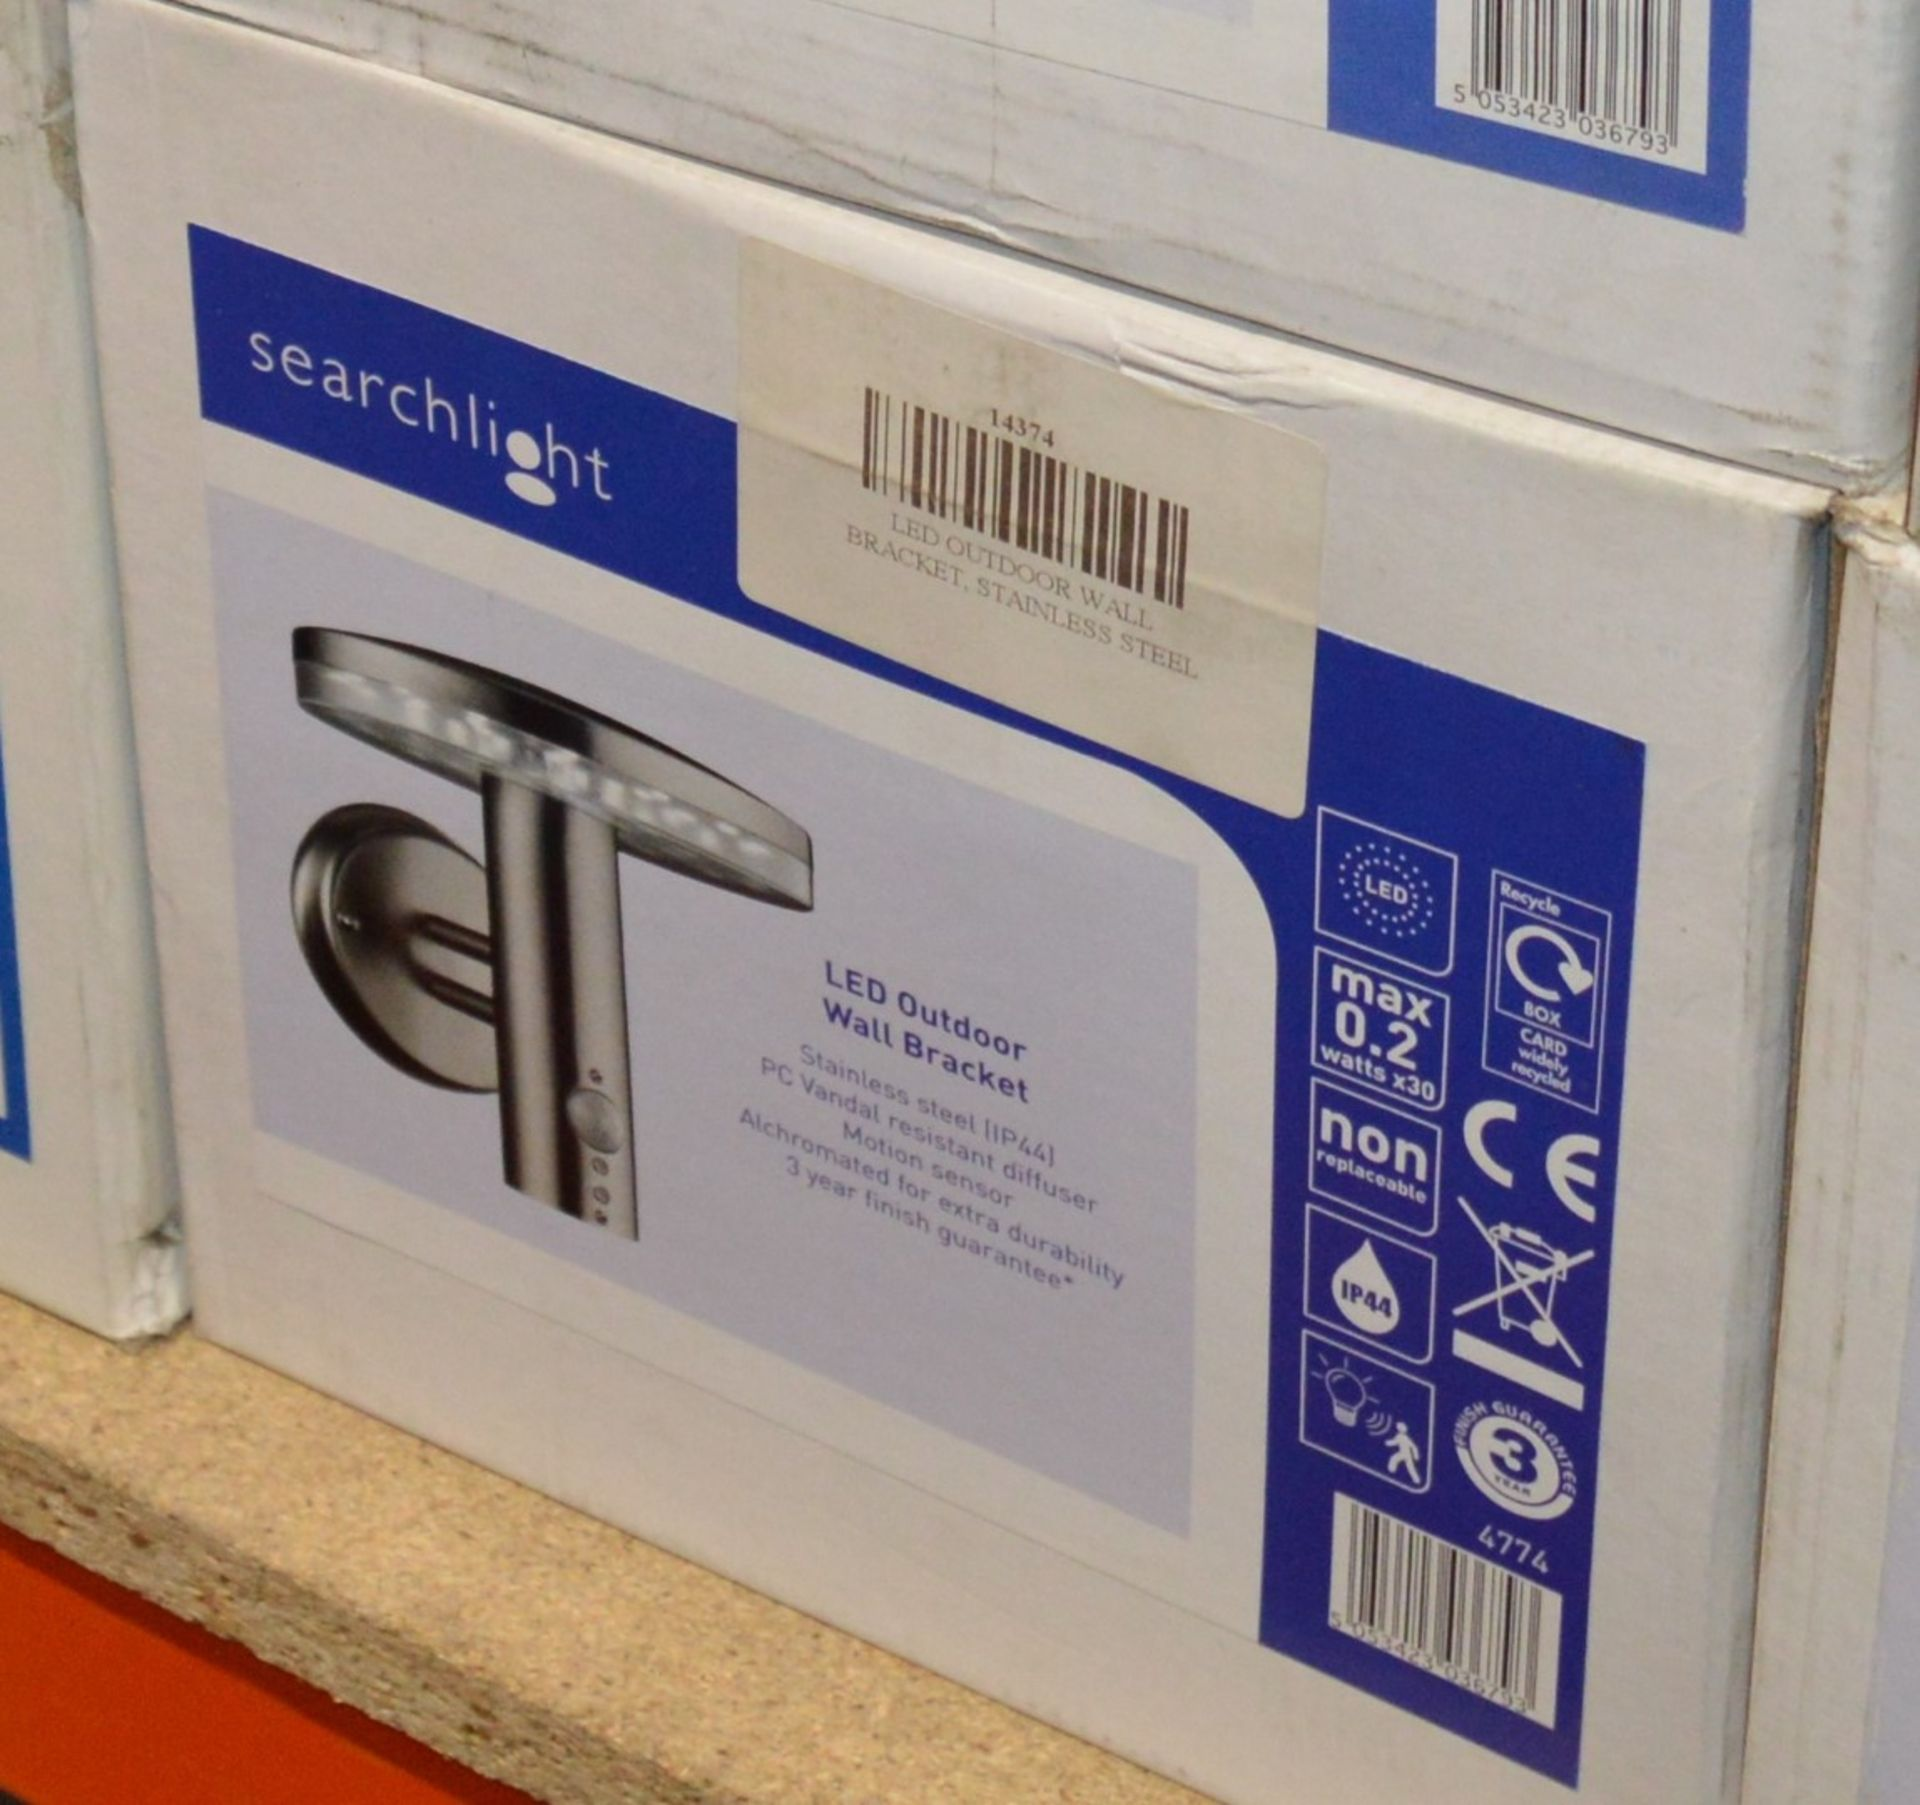 Lot 9160 - 2 x SearchlightOutdoor LED Wall Lights in Brushed Chrome IP44 - Product Code 4774 - New Boxed